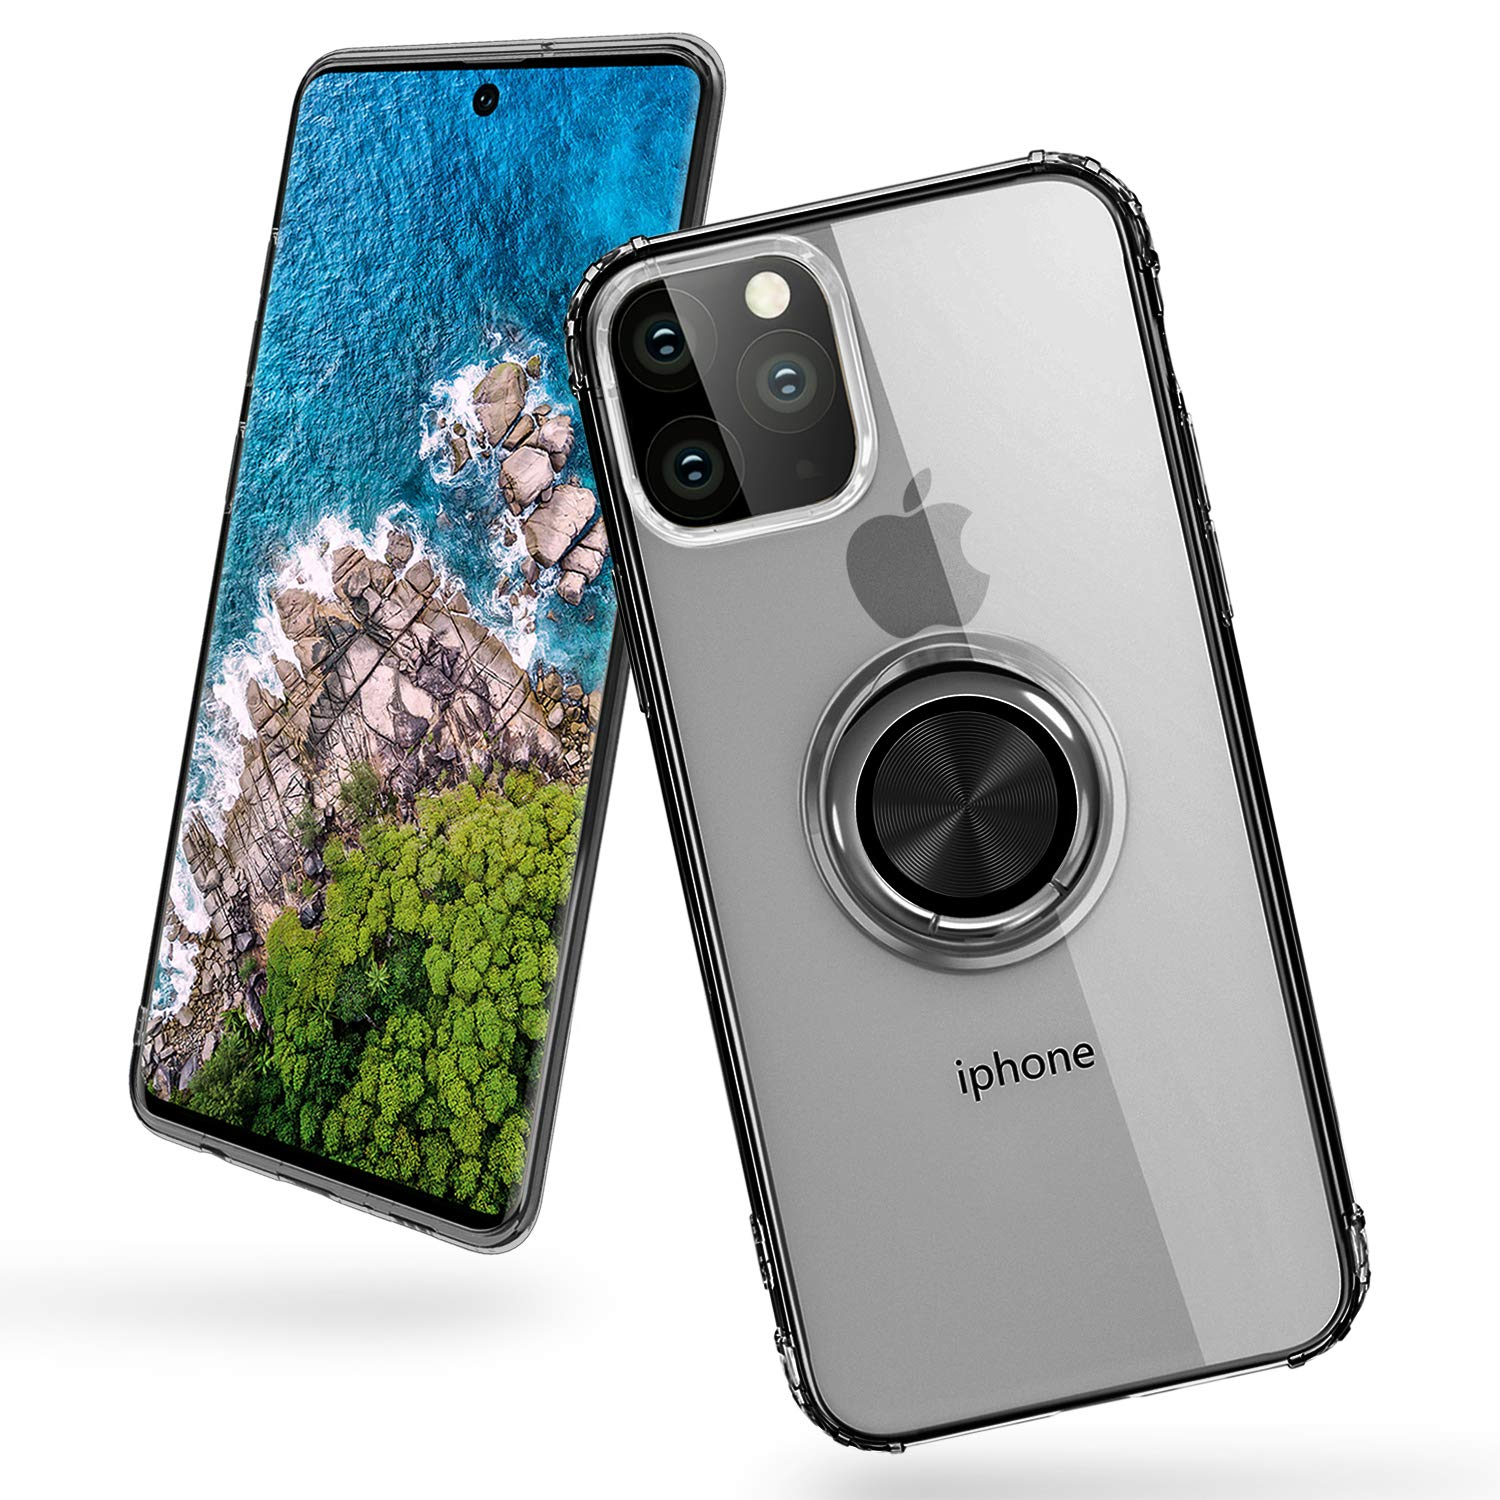 iPhone 11 Pro Max Case,Transparent Slim Soft TPU Reinforced Corner Shock-Absorbing Protective Case [One-Click for Poping Out] with 360 Degree Rotation Ring Holder Stand for iPhone 11 Pro Max,Black